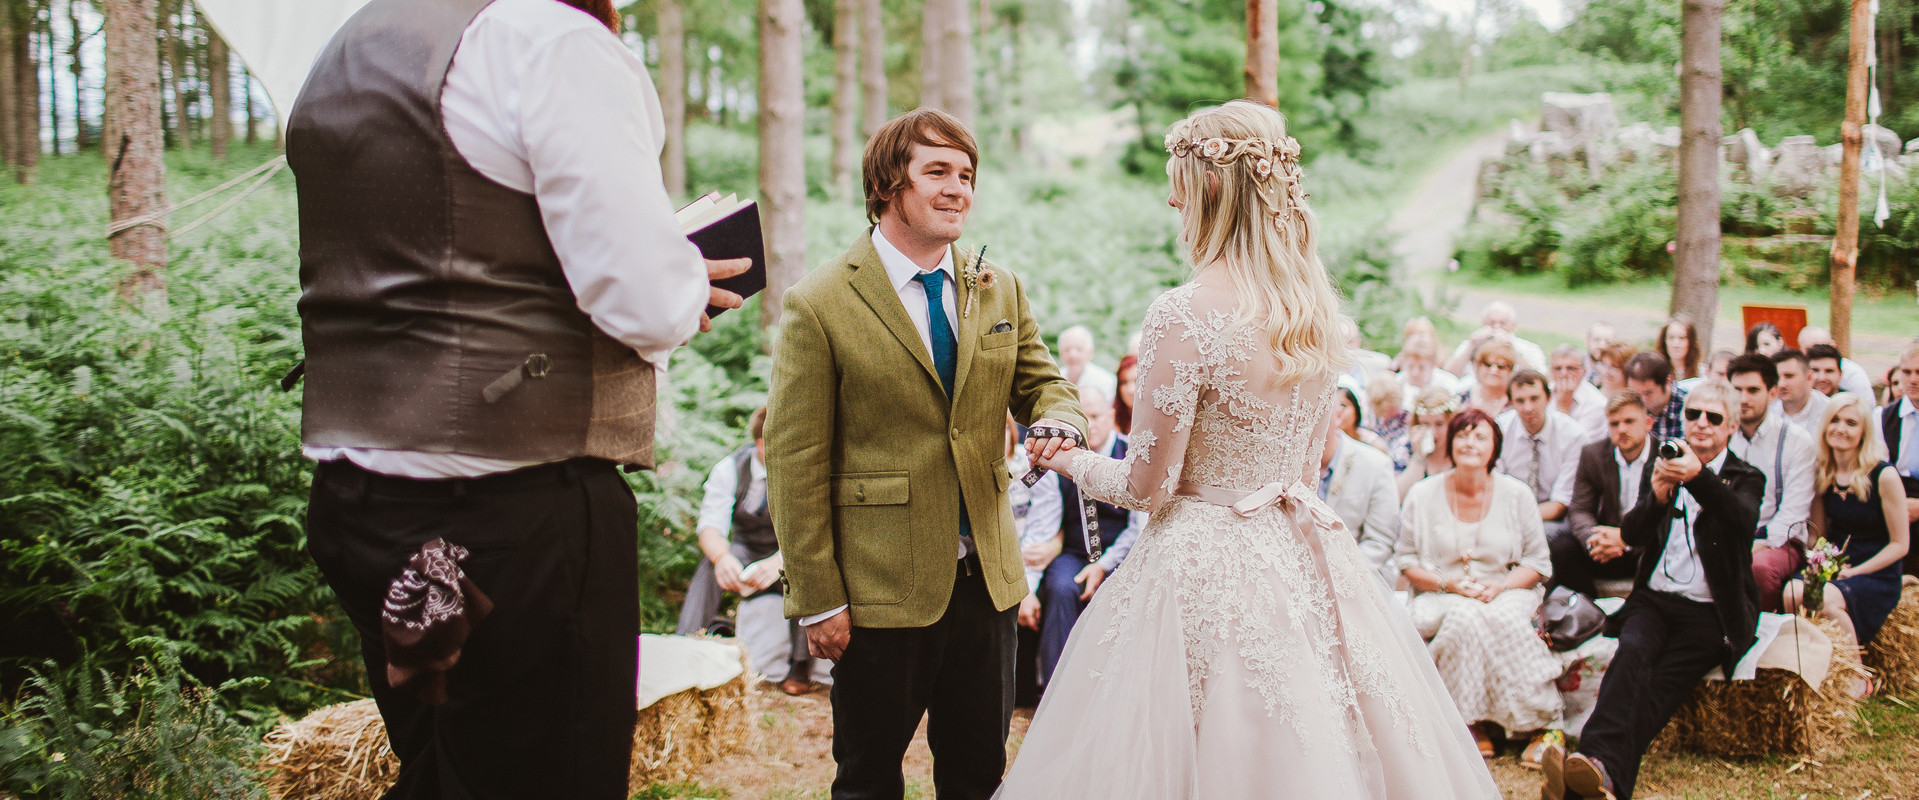 Relaxed Manchester Wedding Photography - North West Wedding Photographer